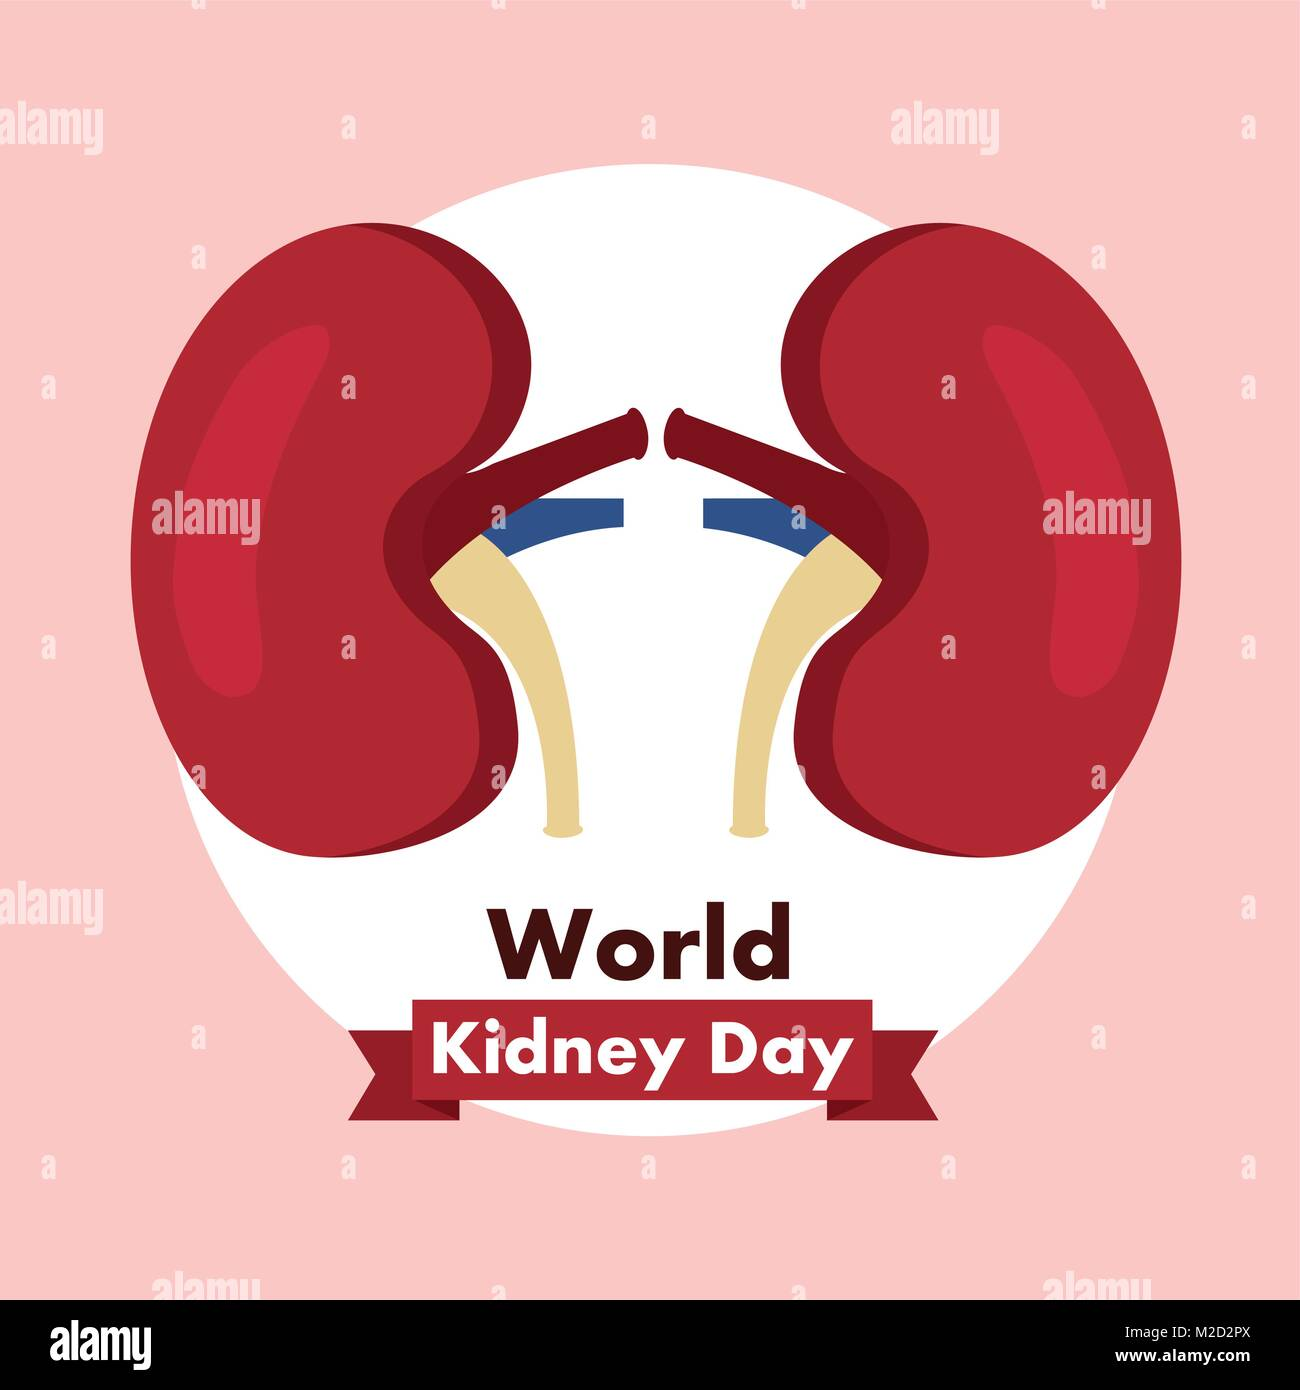 world kidney day healthcare medical campaign poster Stock